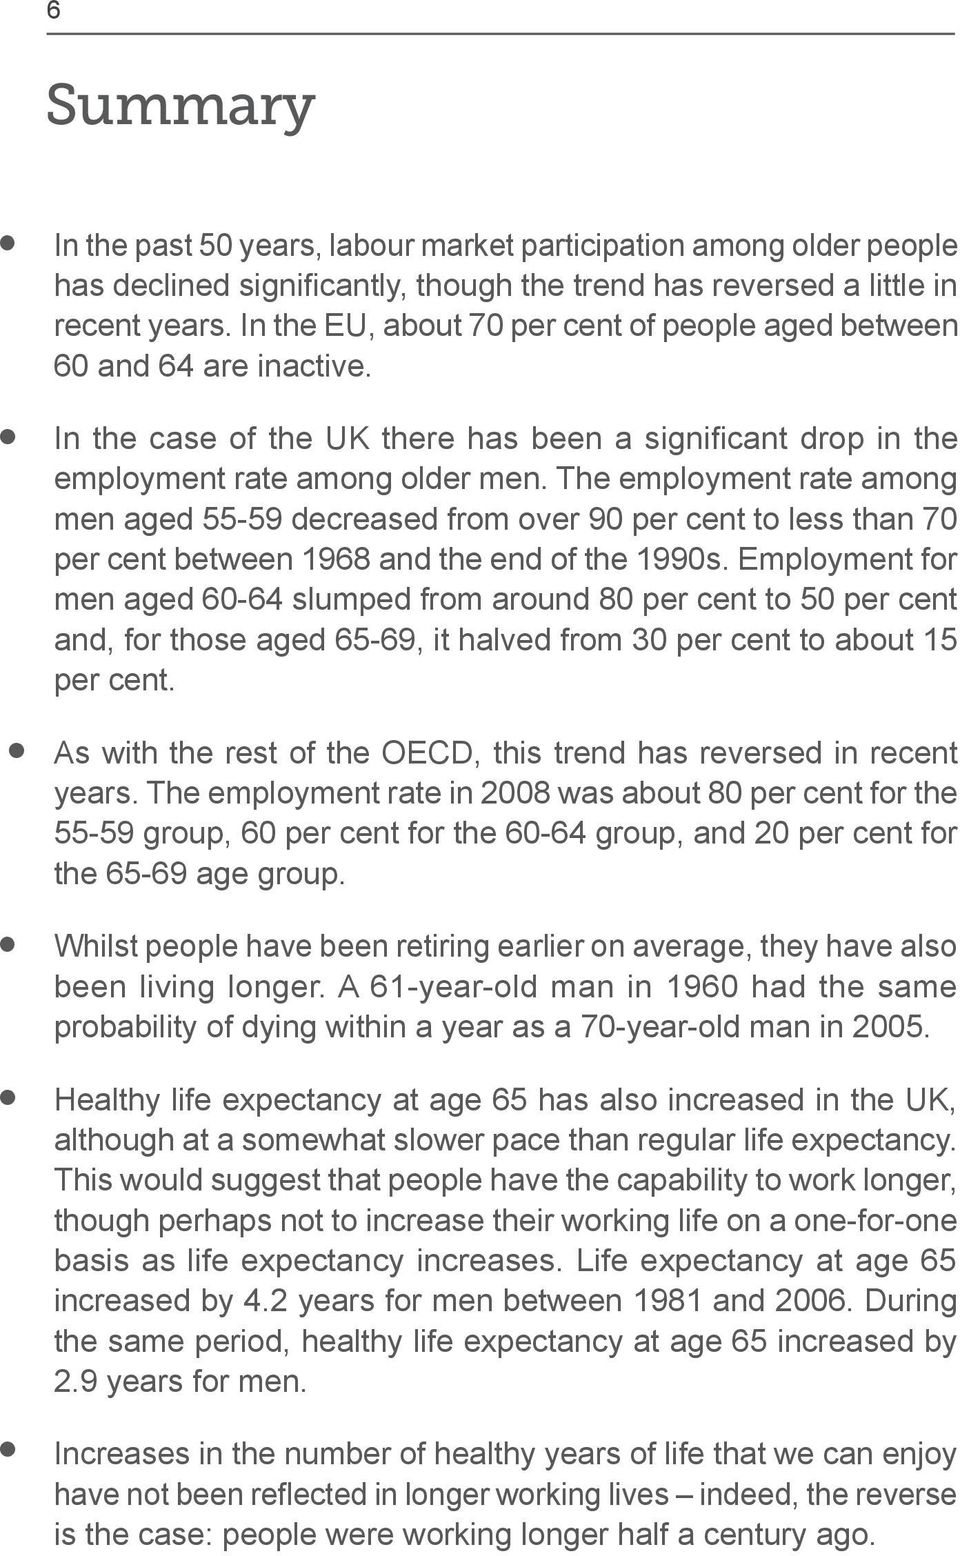 Employment for men aged 60-64 slumped from around 80 per cent to 50 per cent and, for those aged 65-69, it halved from 30 per cent to about 15 per cent.